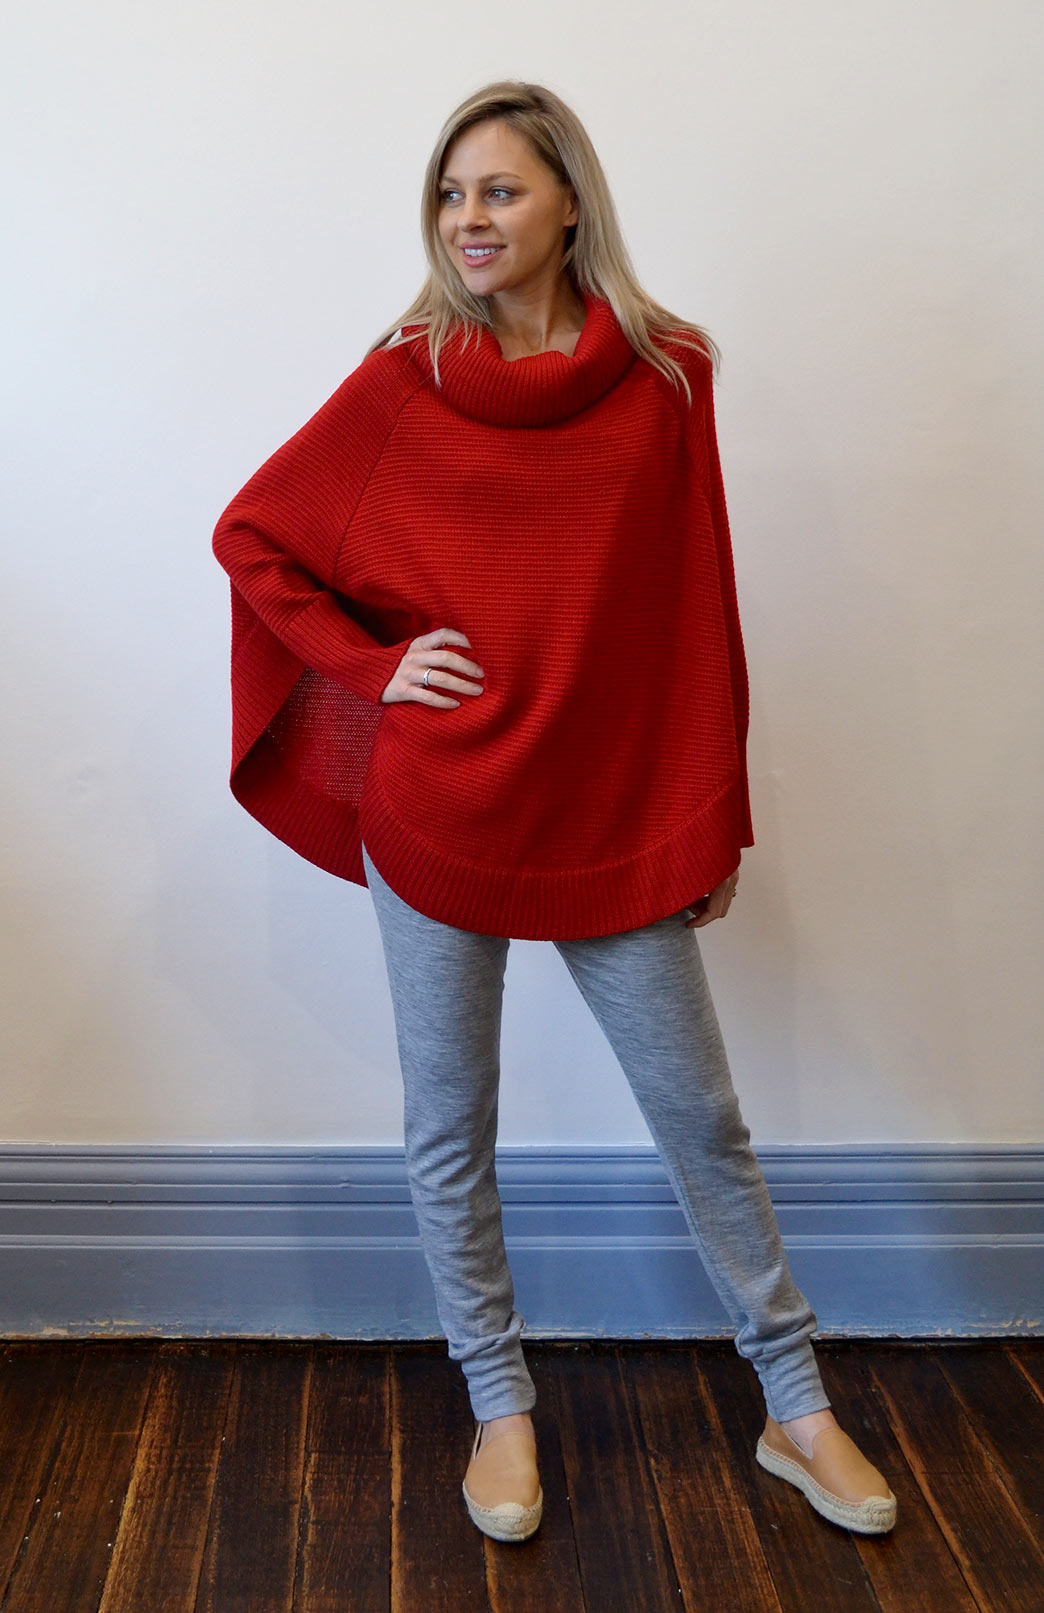 a054bacac Chunky Cowl Neck Poncho with Sleeves - Women's Red Wool Poncho with cowl  neck line and